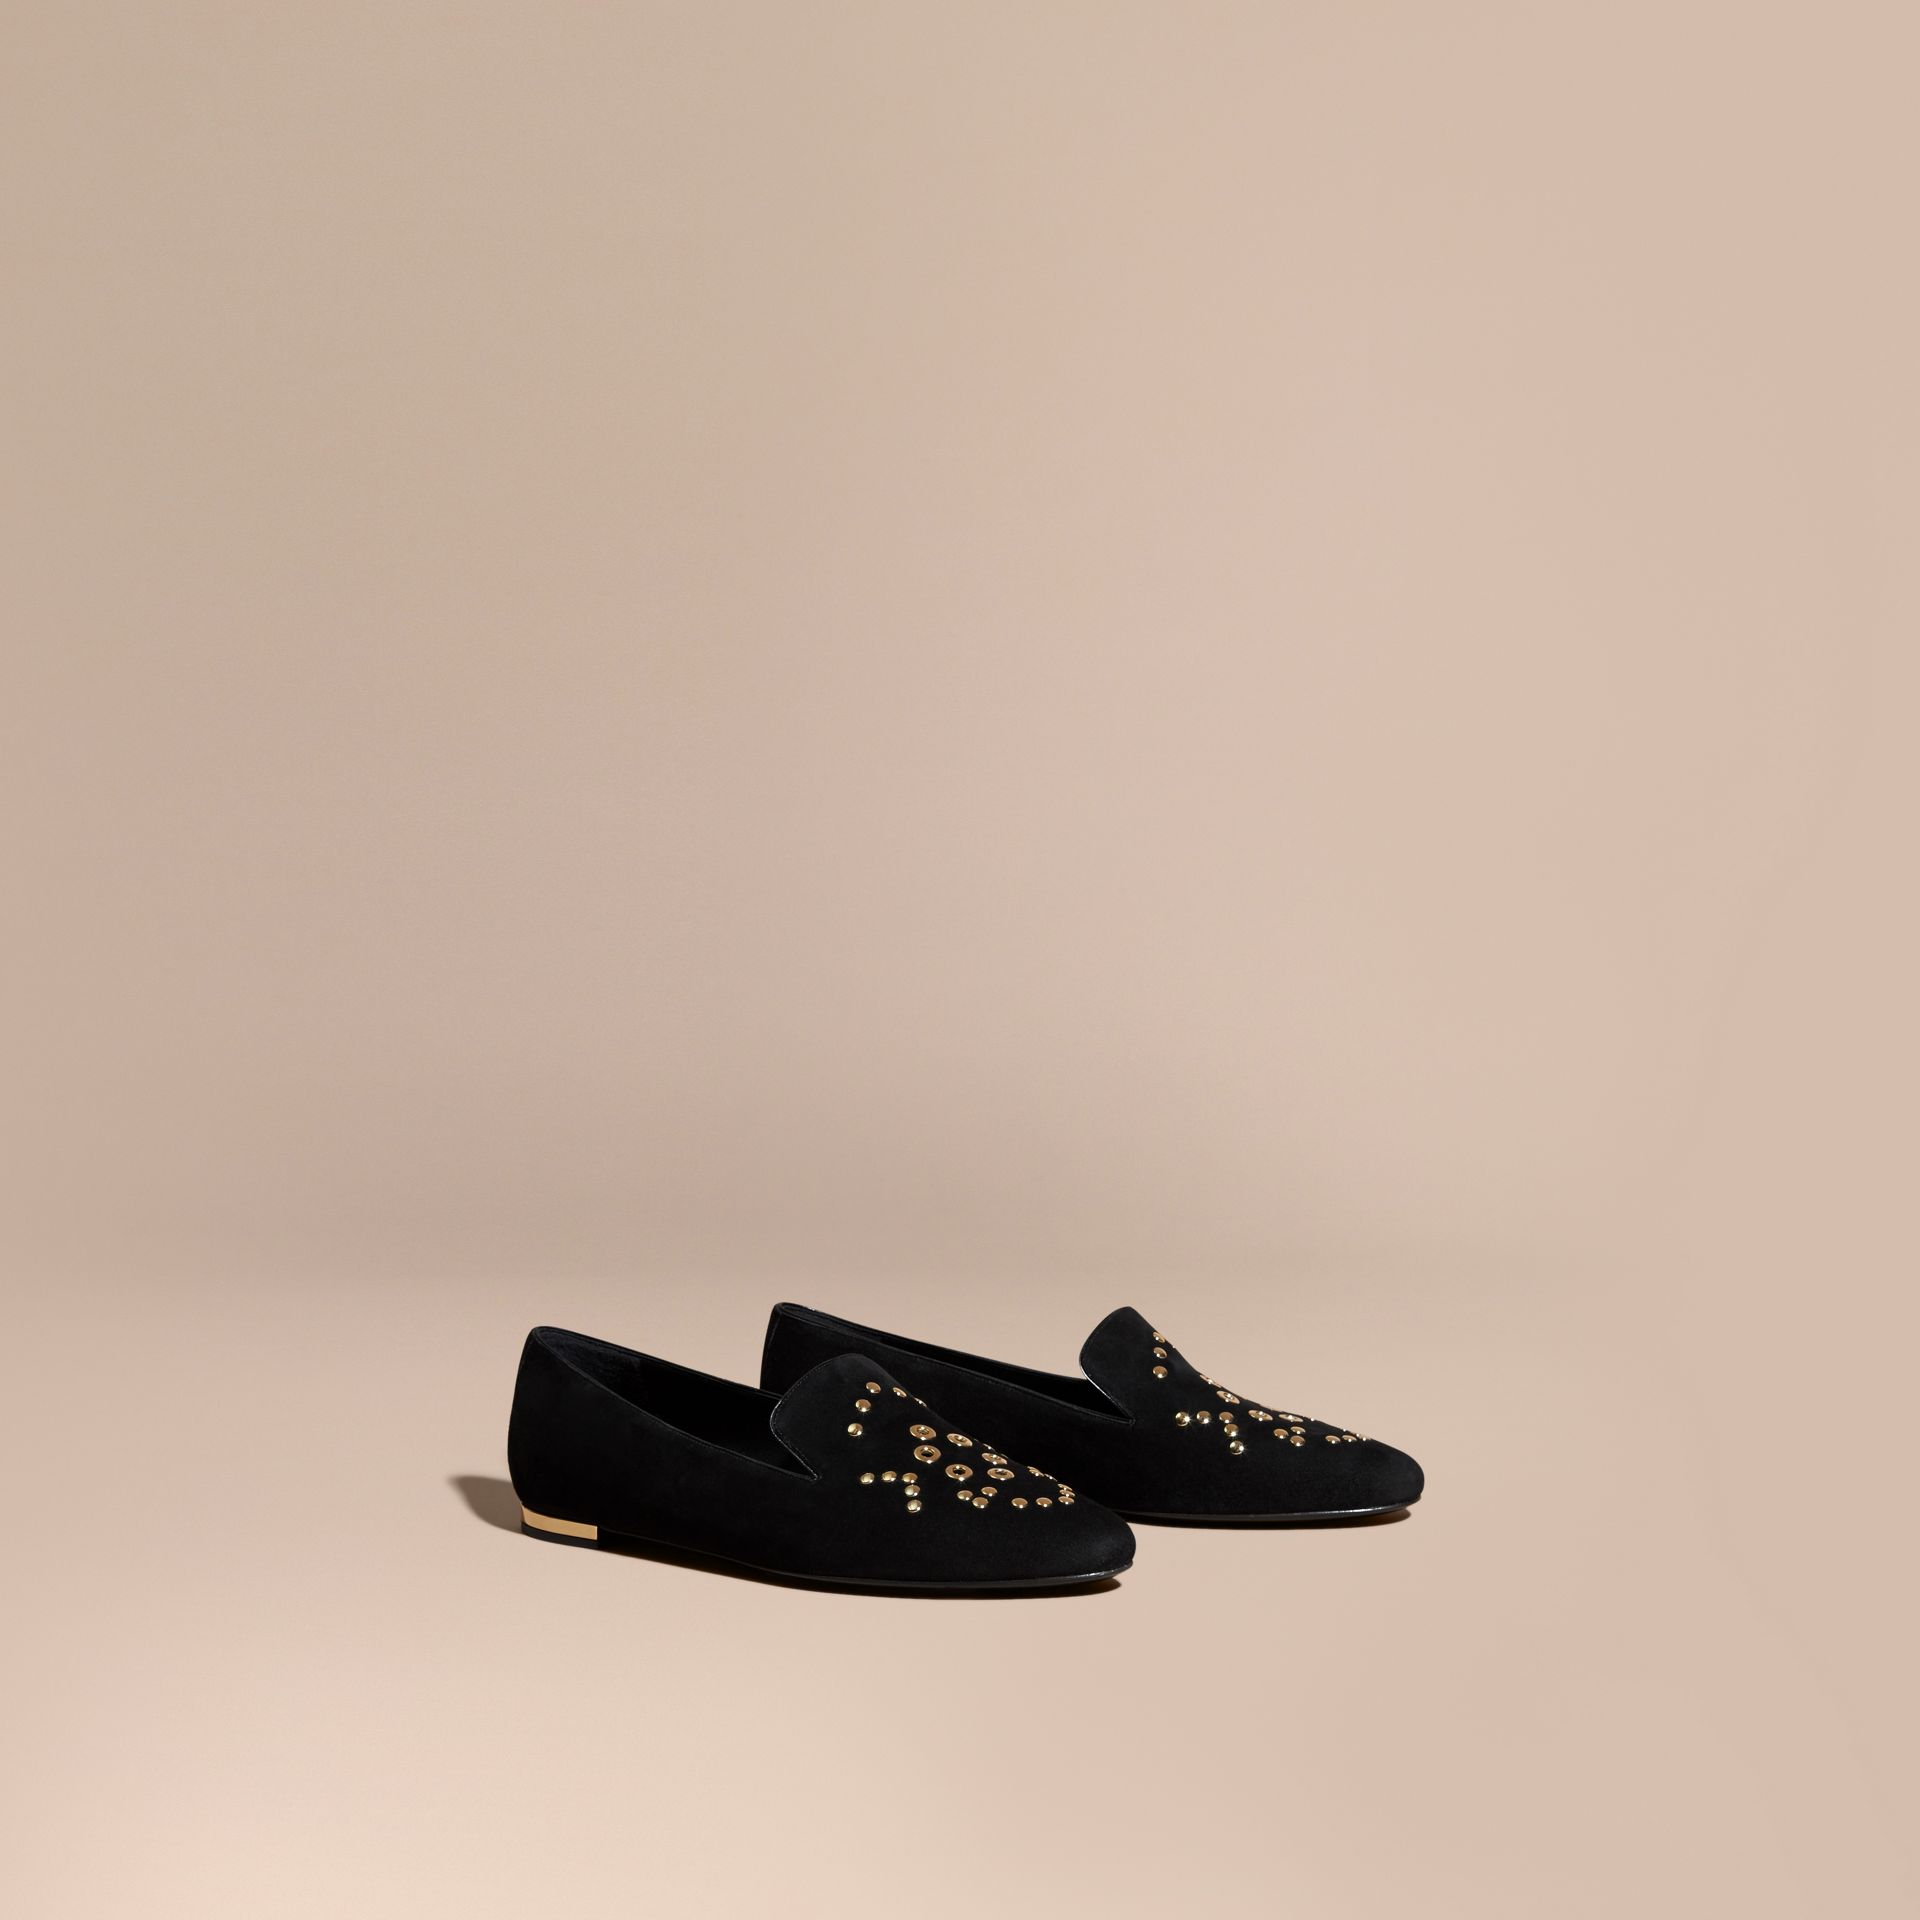 Rivet and Eyelet Detail Suede Loafers - gallery image 1